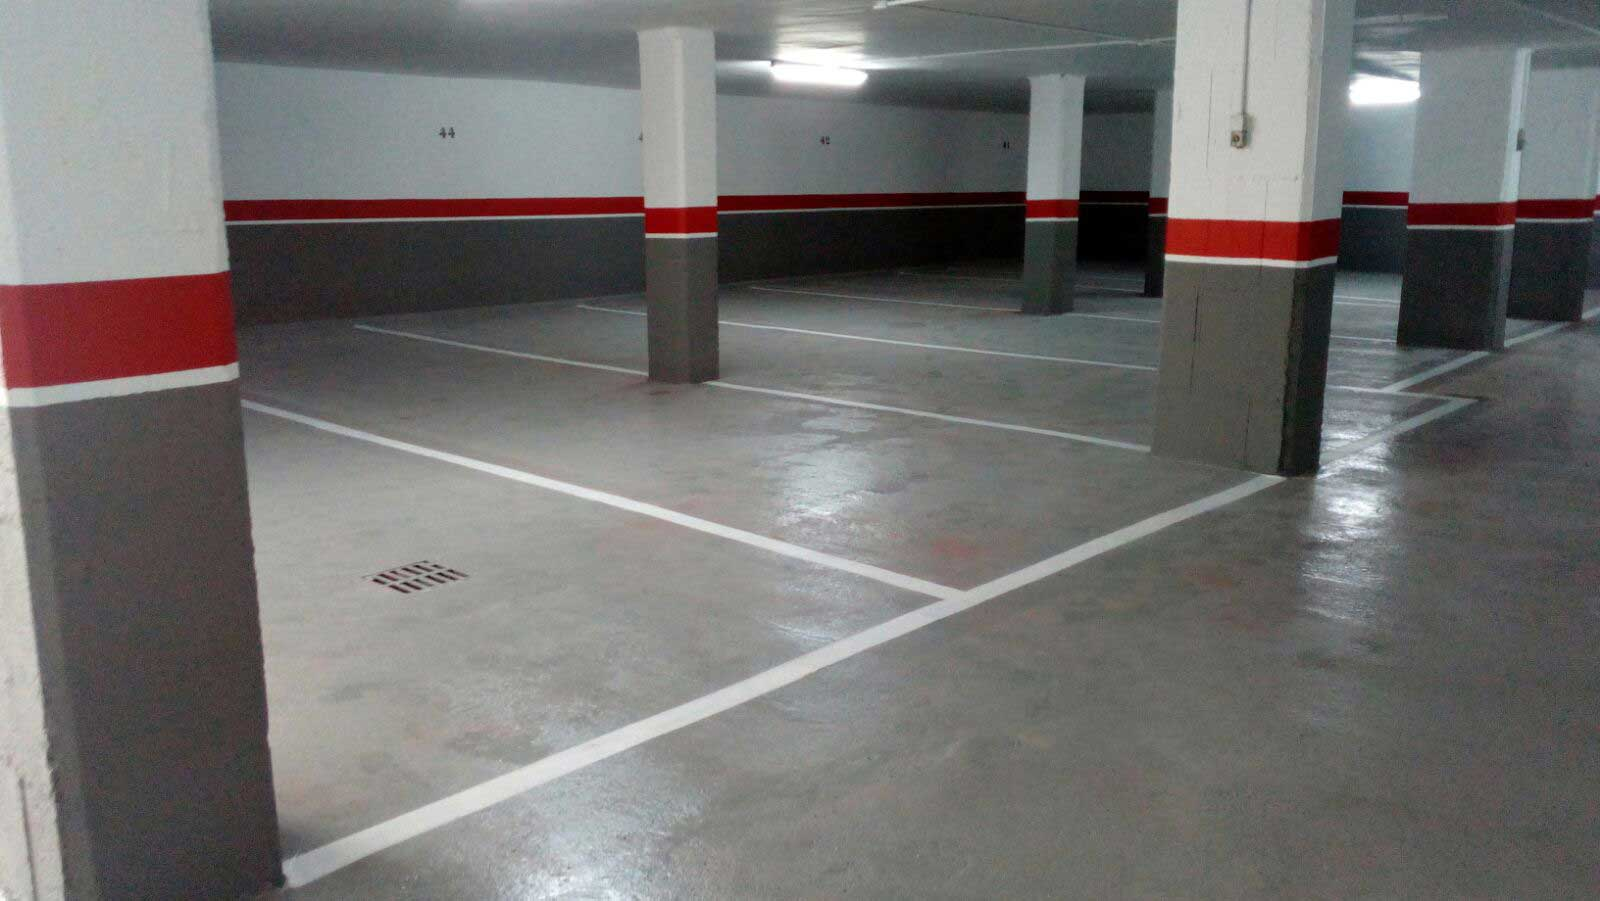 acuario_rehabilitacion-de-parking-2